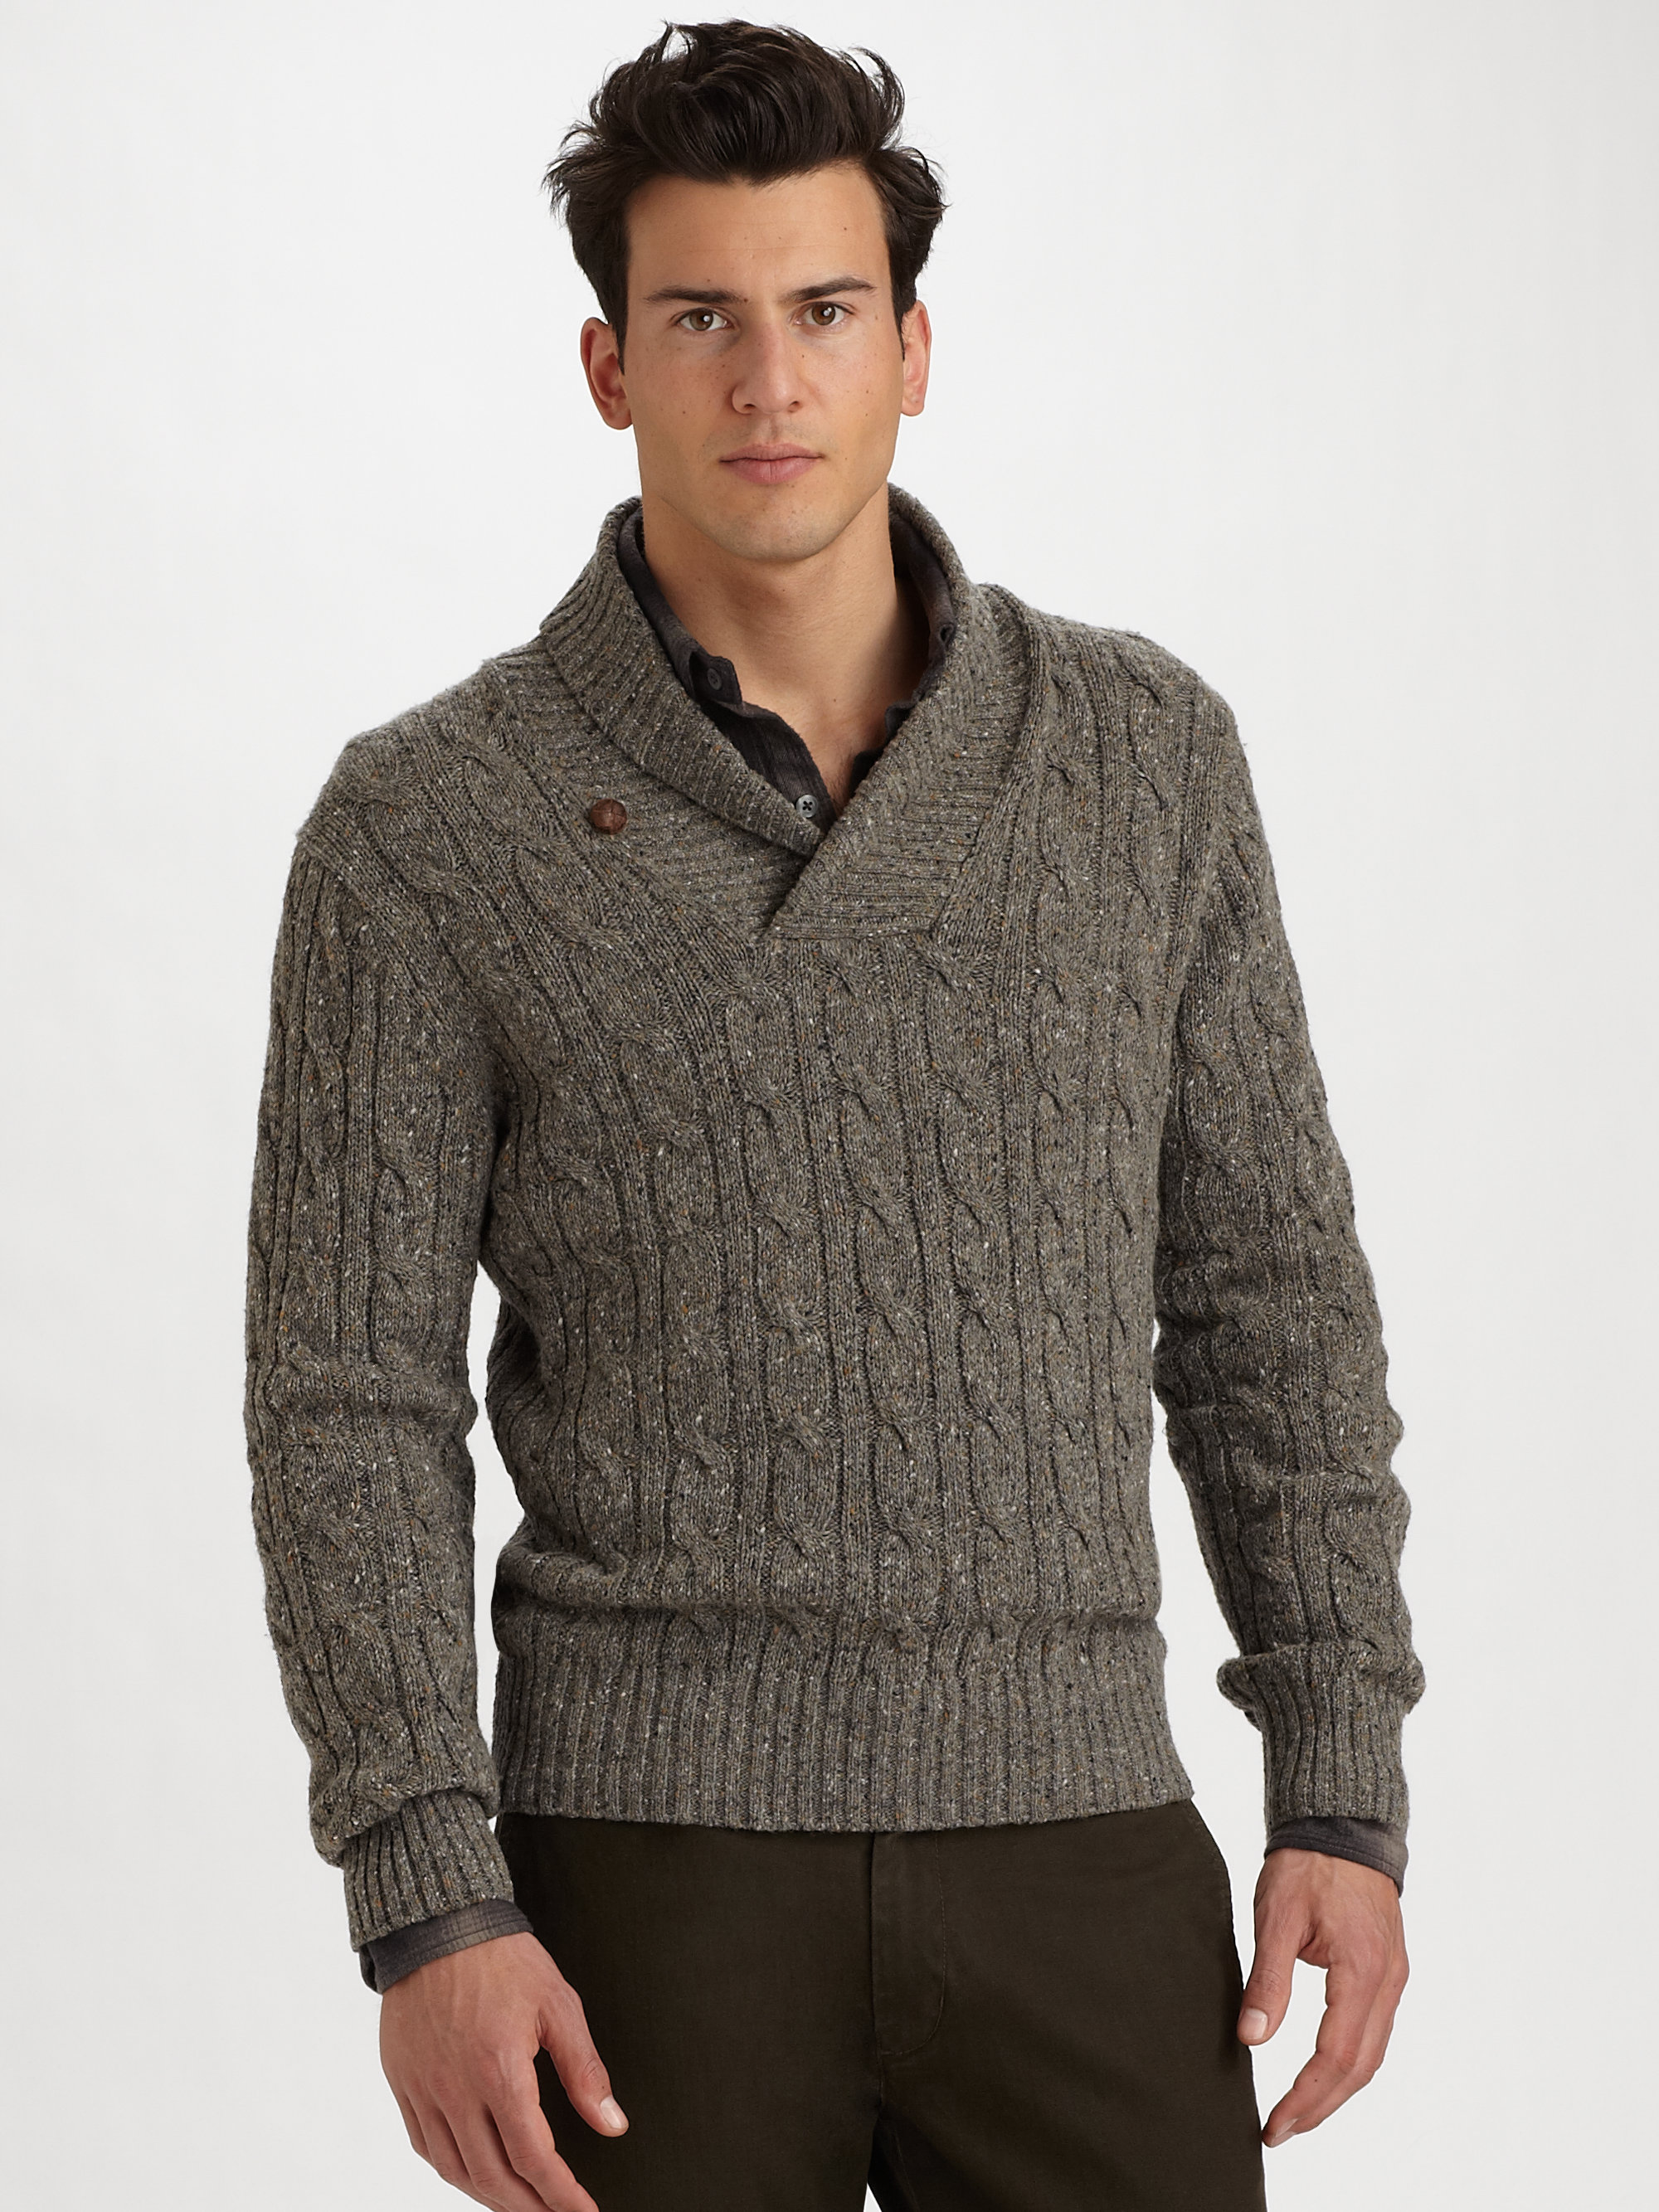 shawl collar sweater gallery siyzgsh